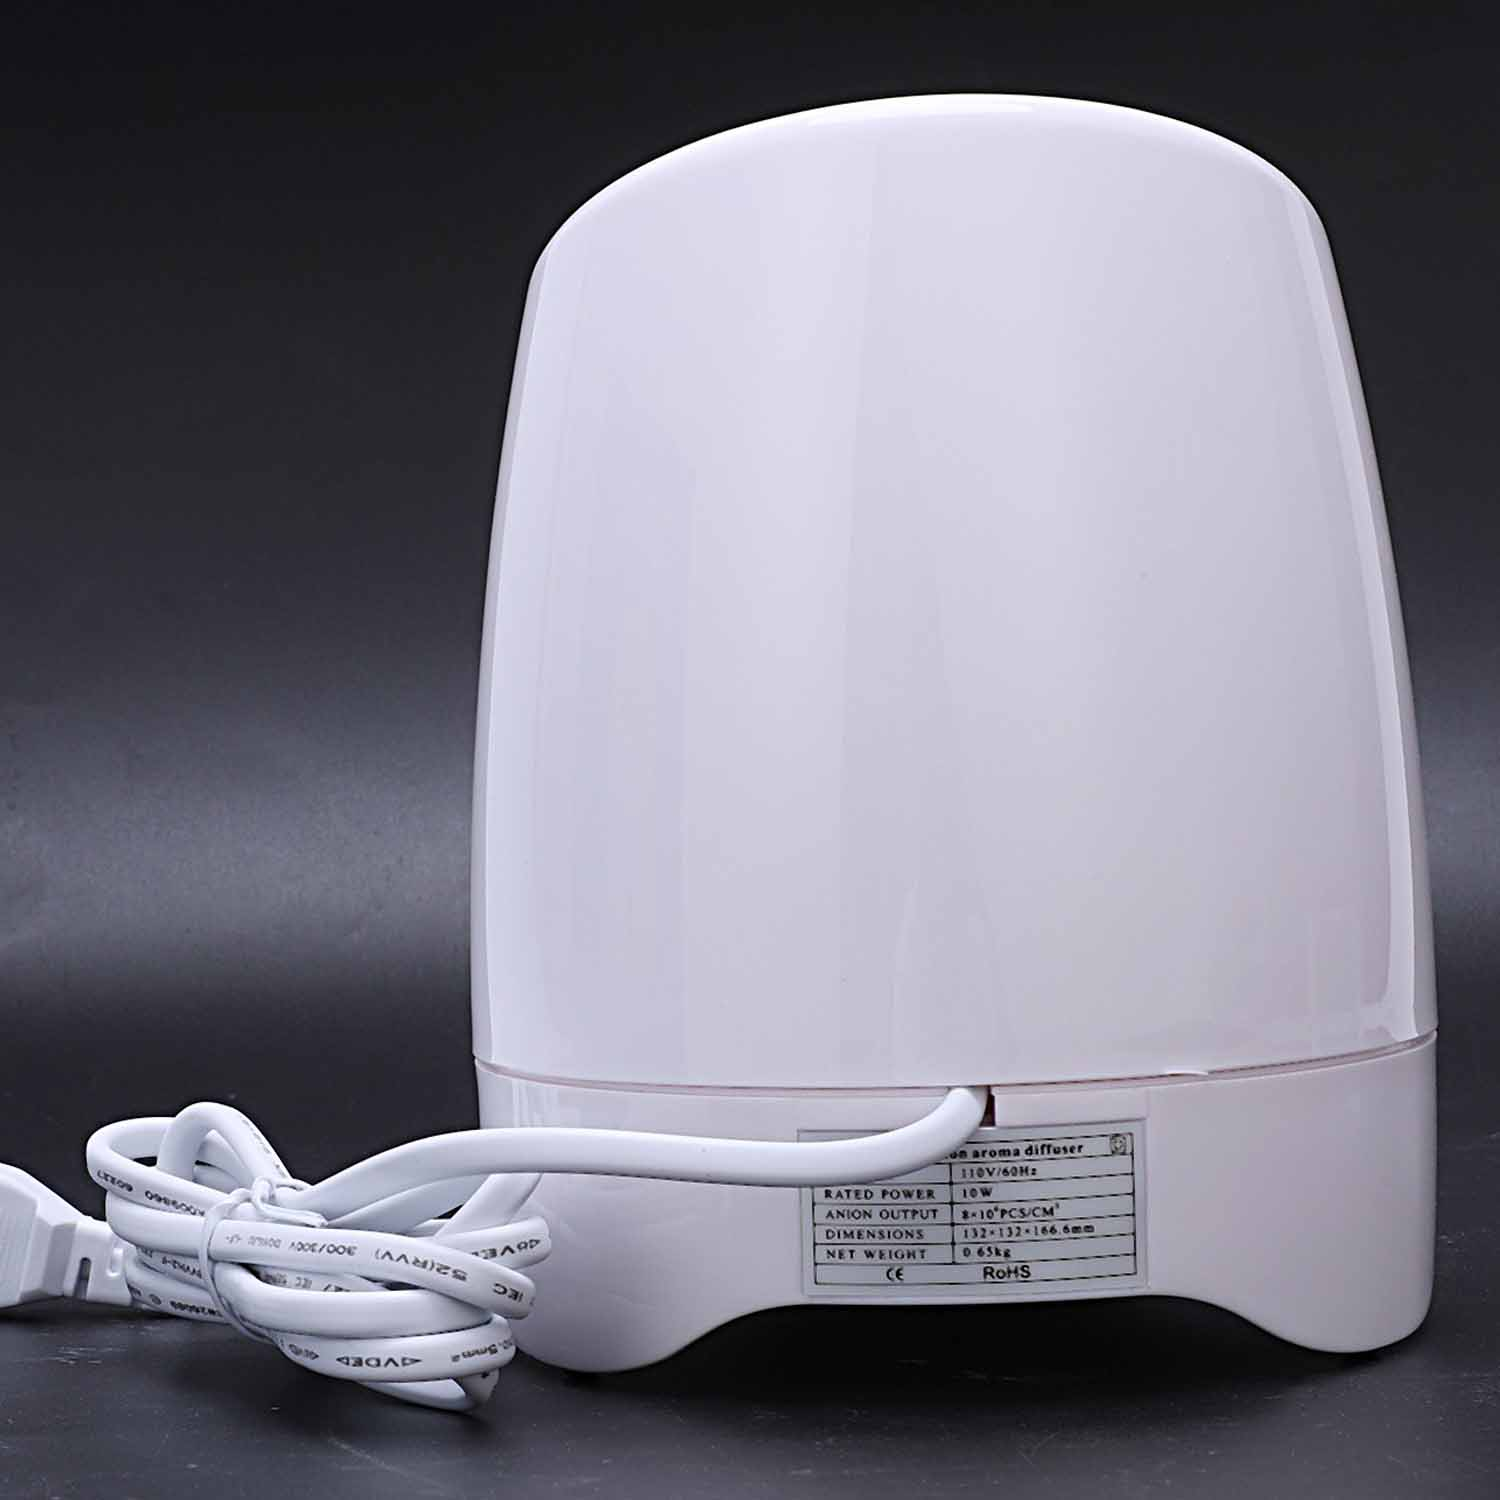 Home And Office Air Purifier With Aroma Diffuser, Ozone Generator And Ionizer, GL-2100 CE ROHS EU Plug